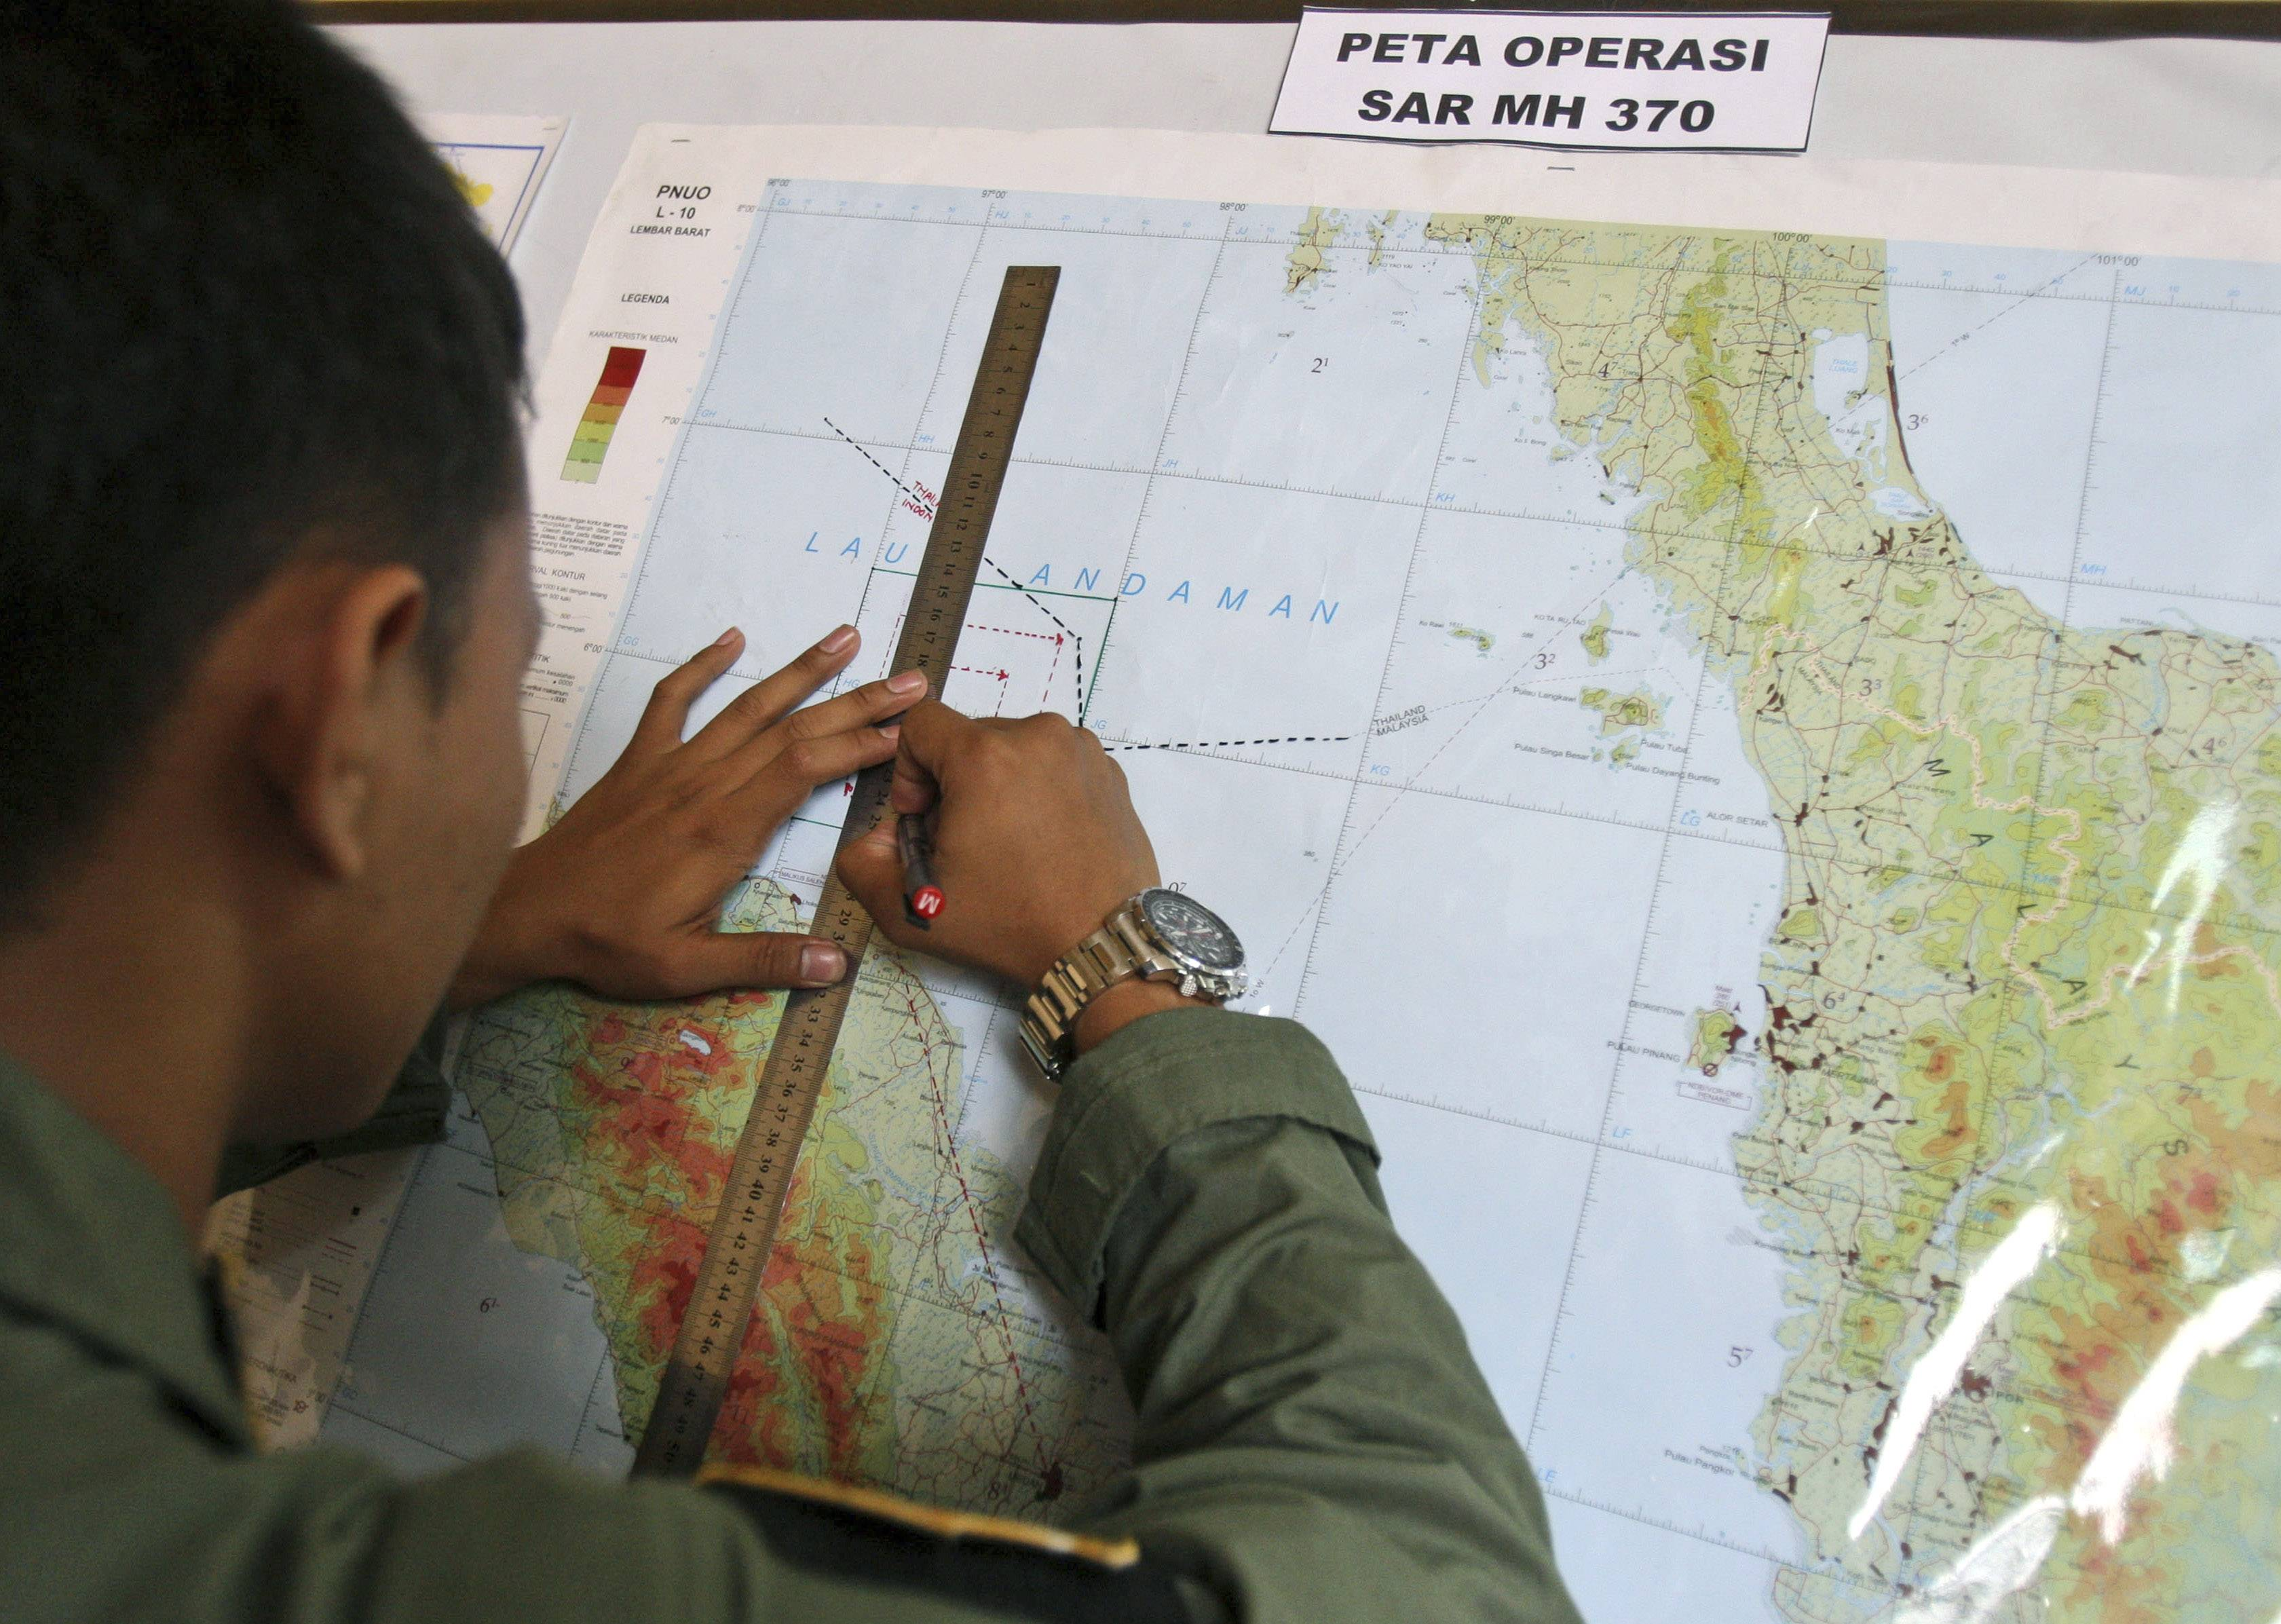 An Indonesian Air Force officer draws a flight pattern flown earlier in a search operation for the missing Malaysia Airlines Boeing 777, during a post-mission briefing in Indonesia on Thursday.